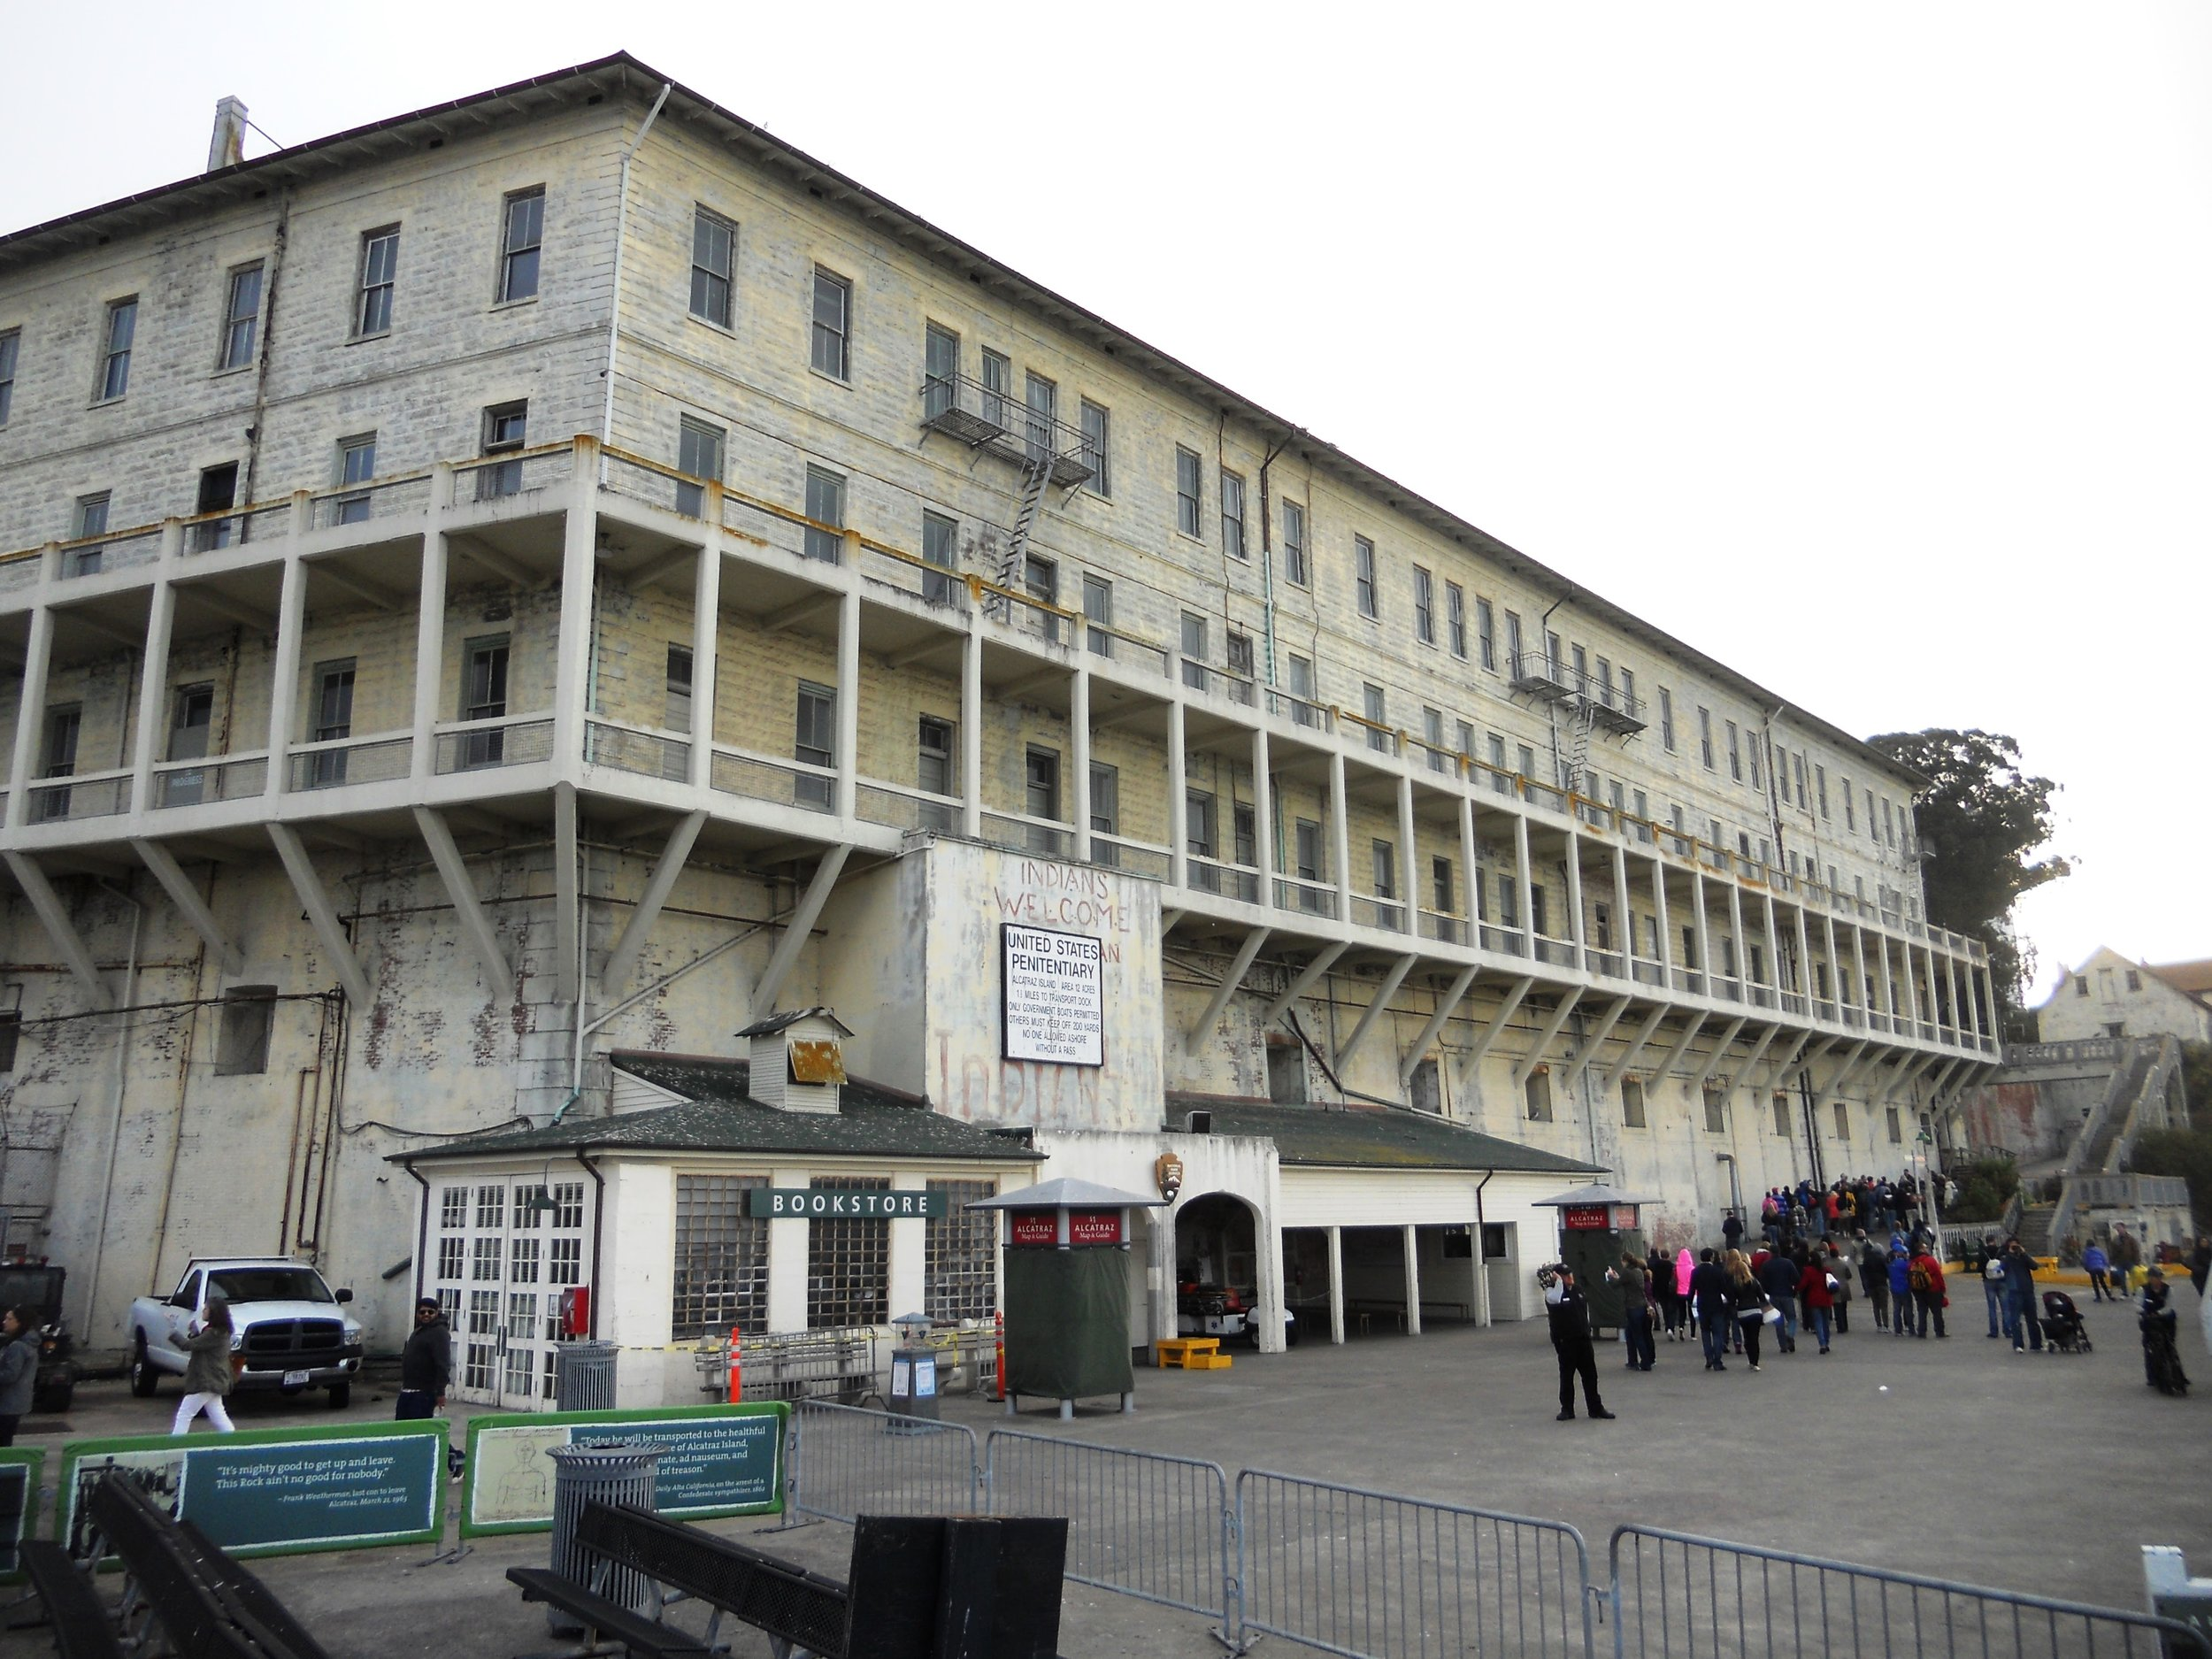 One of the main buildings on Alcatraz as you exit the ferry